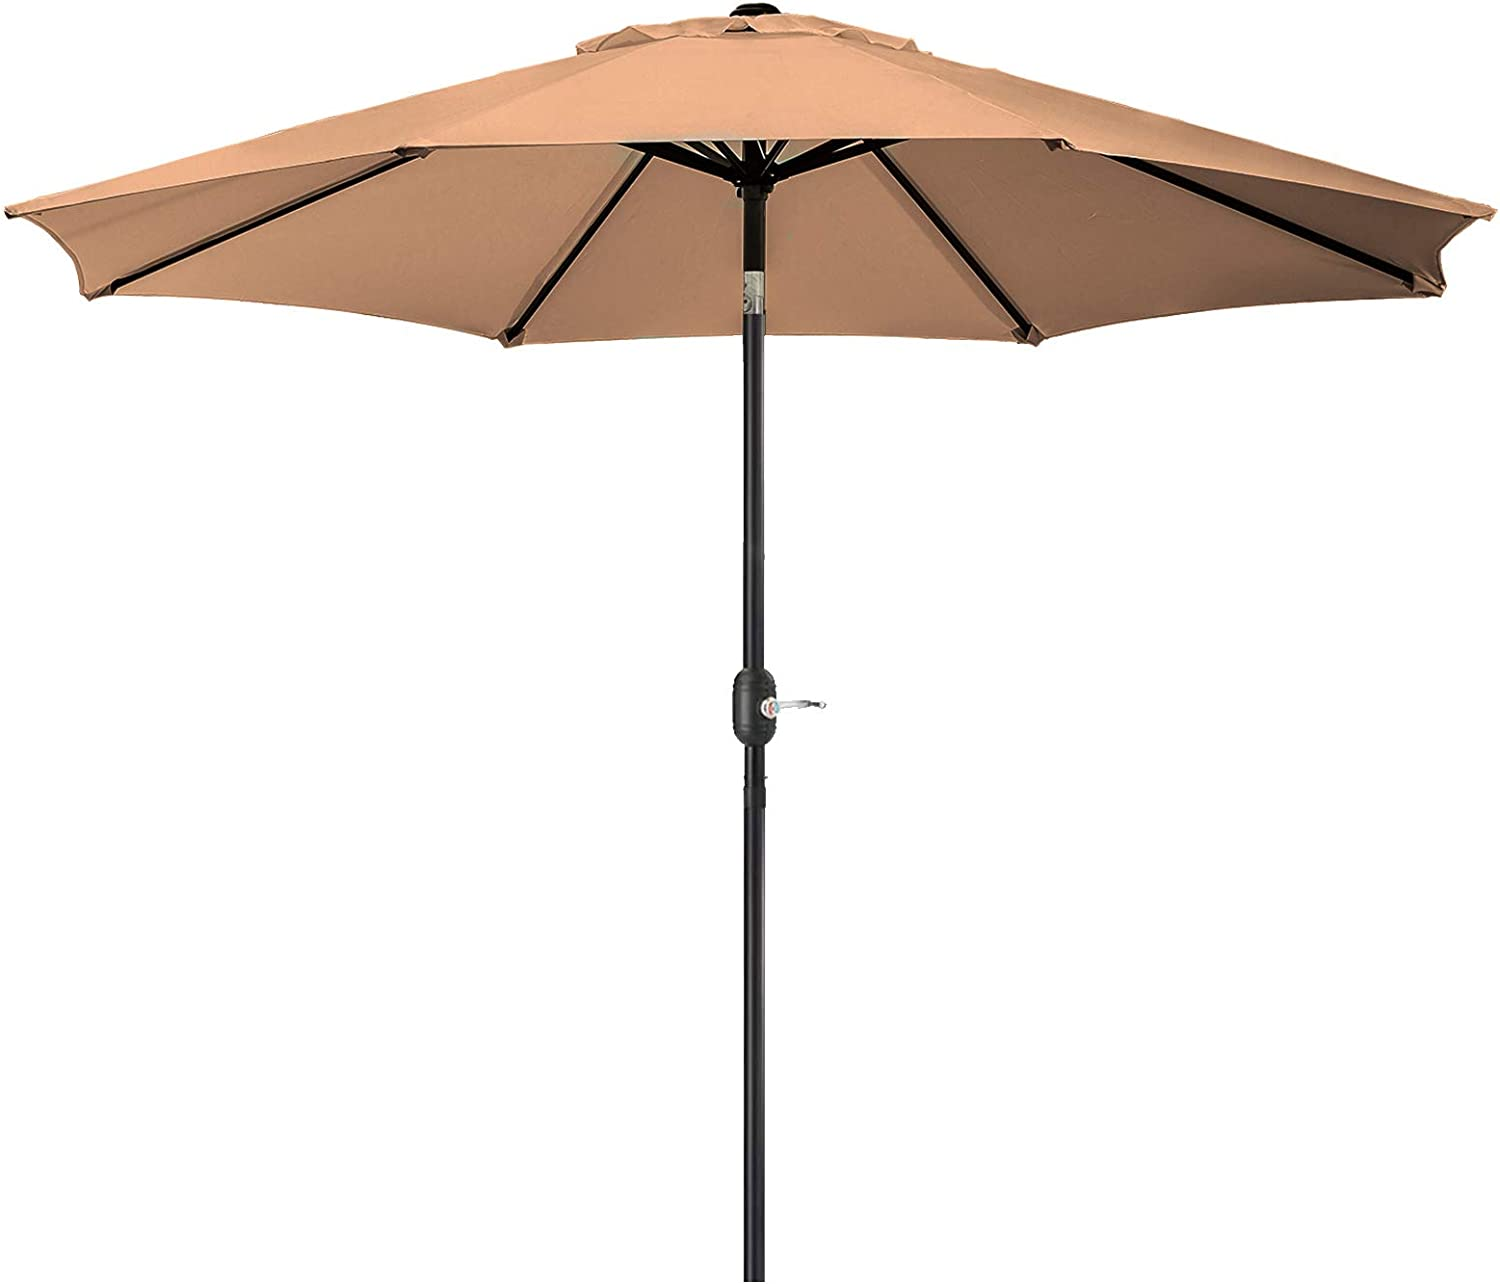 UHINOOS 9 ft Patio Umbrella,Outdoor Umbrella